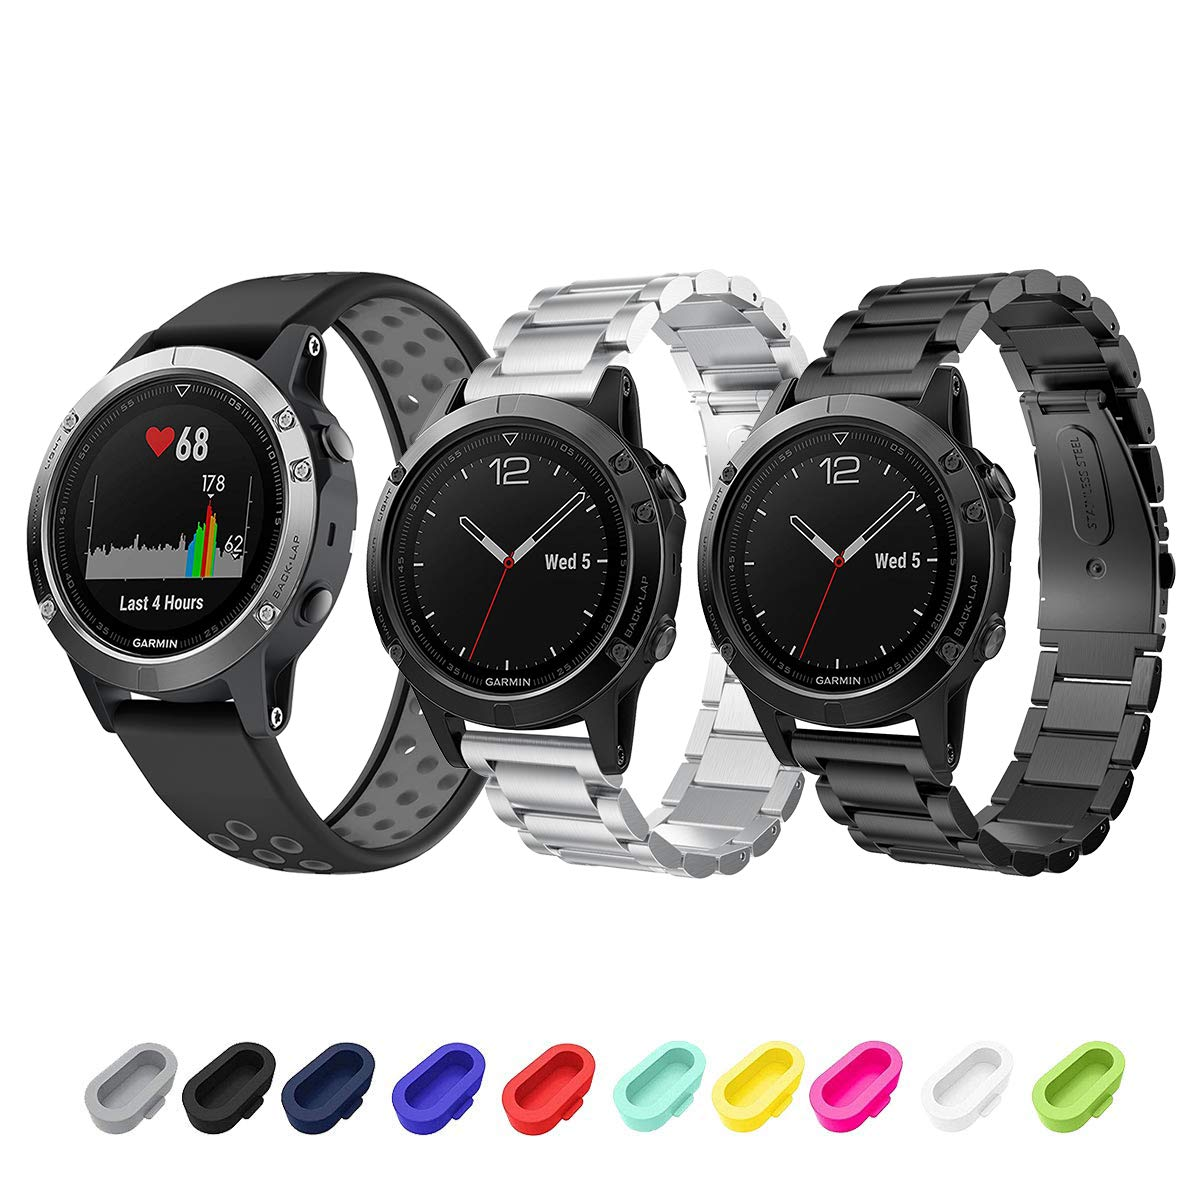 Sycreek Garmin Fenix 5/5 Plus/Forerunner 935/Instinct Smartwatch Band, 22mm Quick Release Solid Stainless Steel Metal+Silicone Replacement Band ...